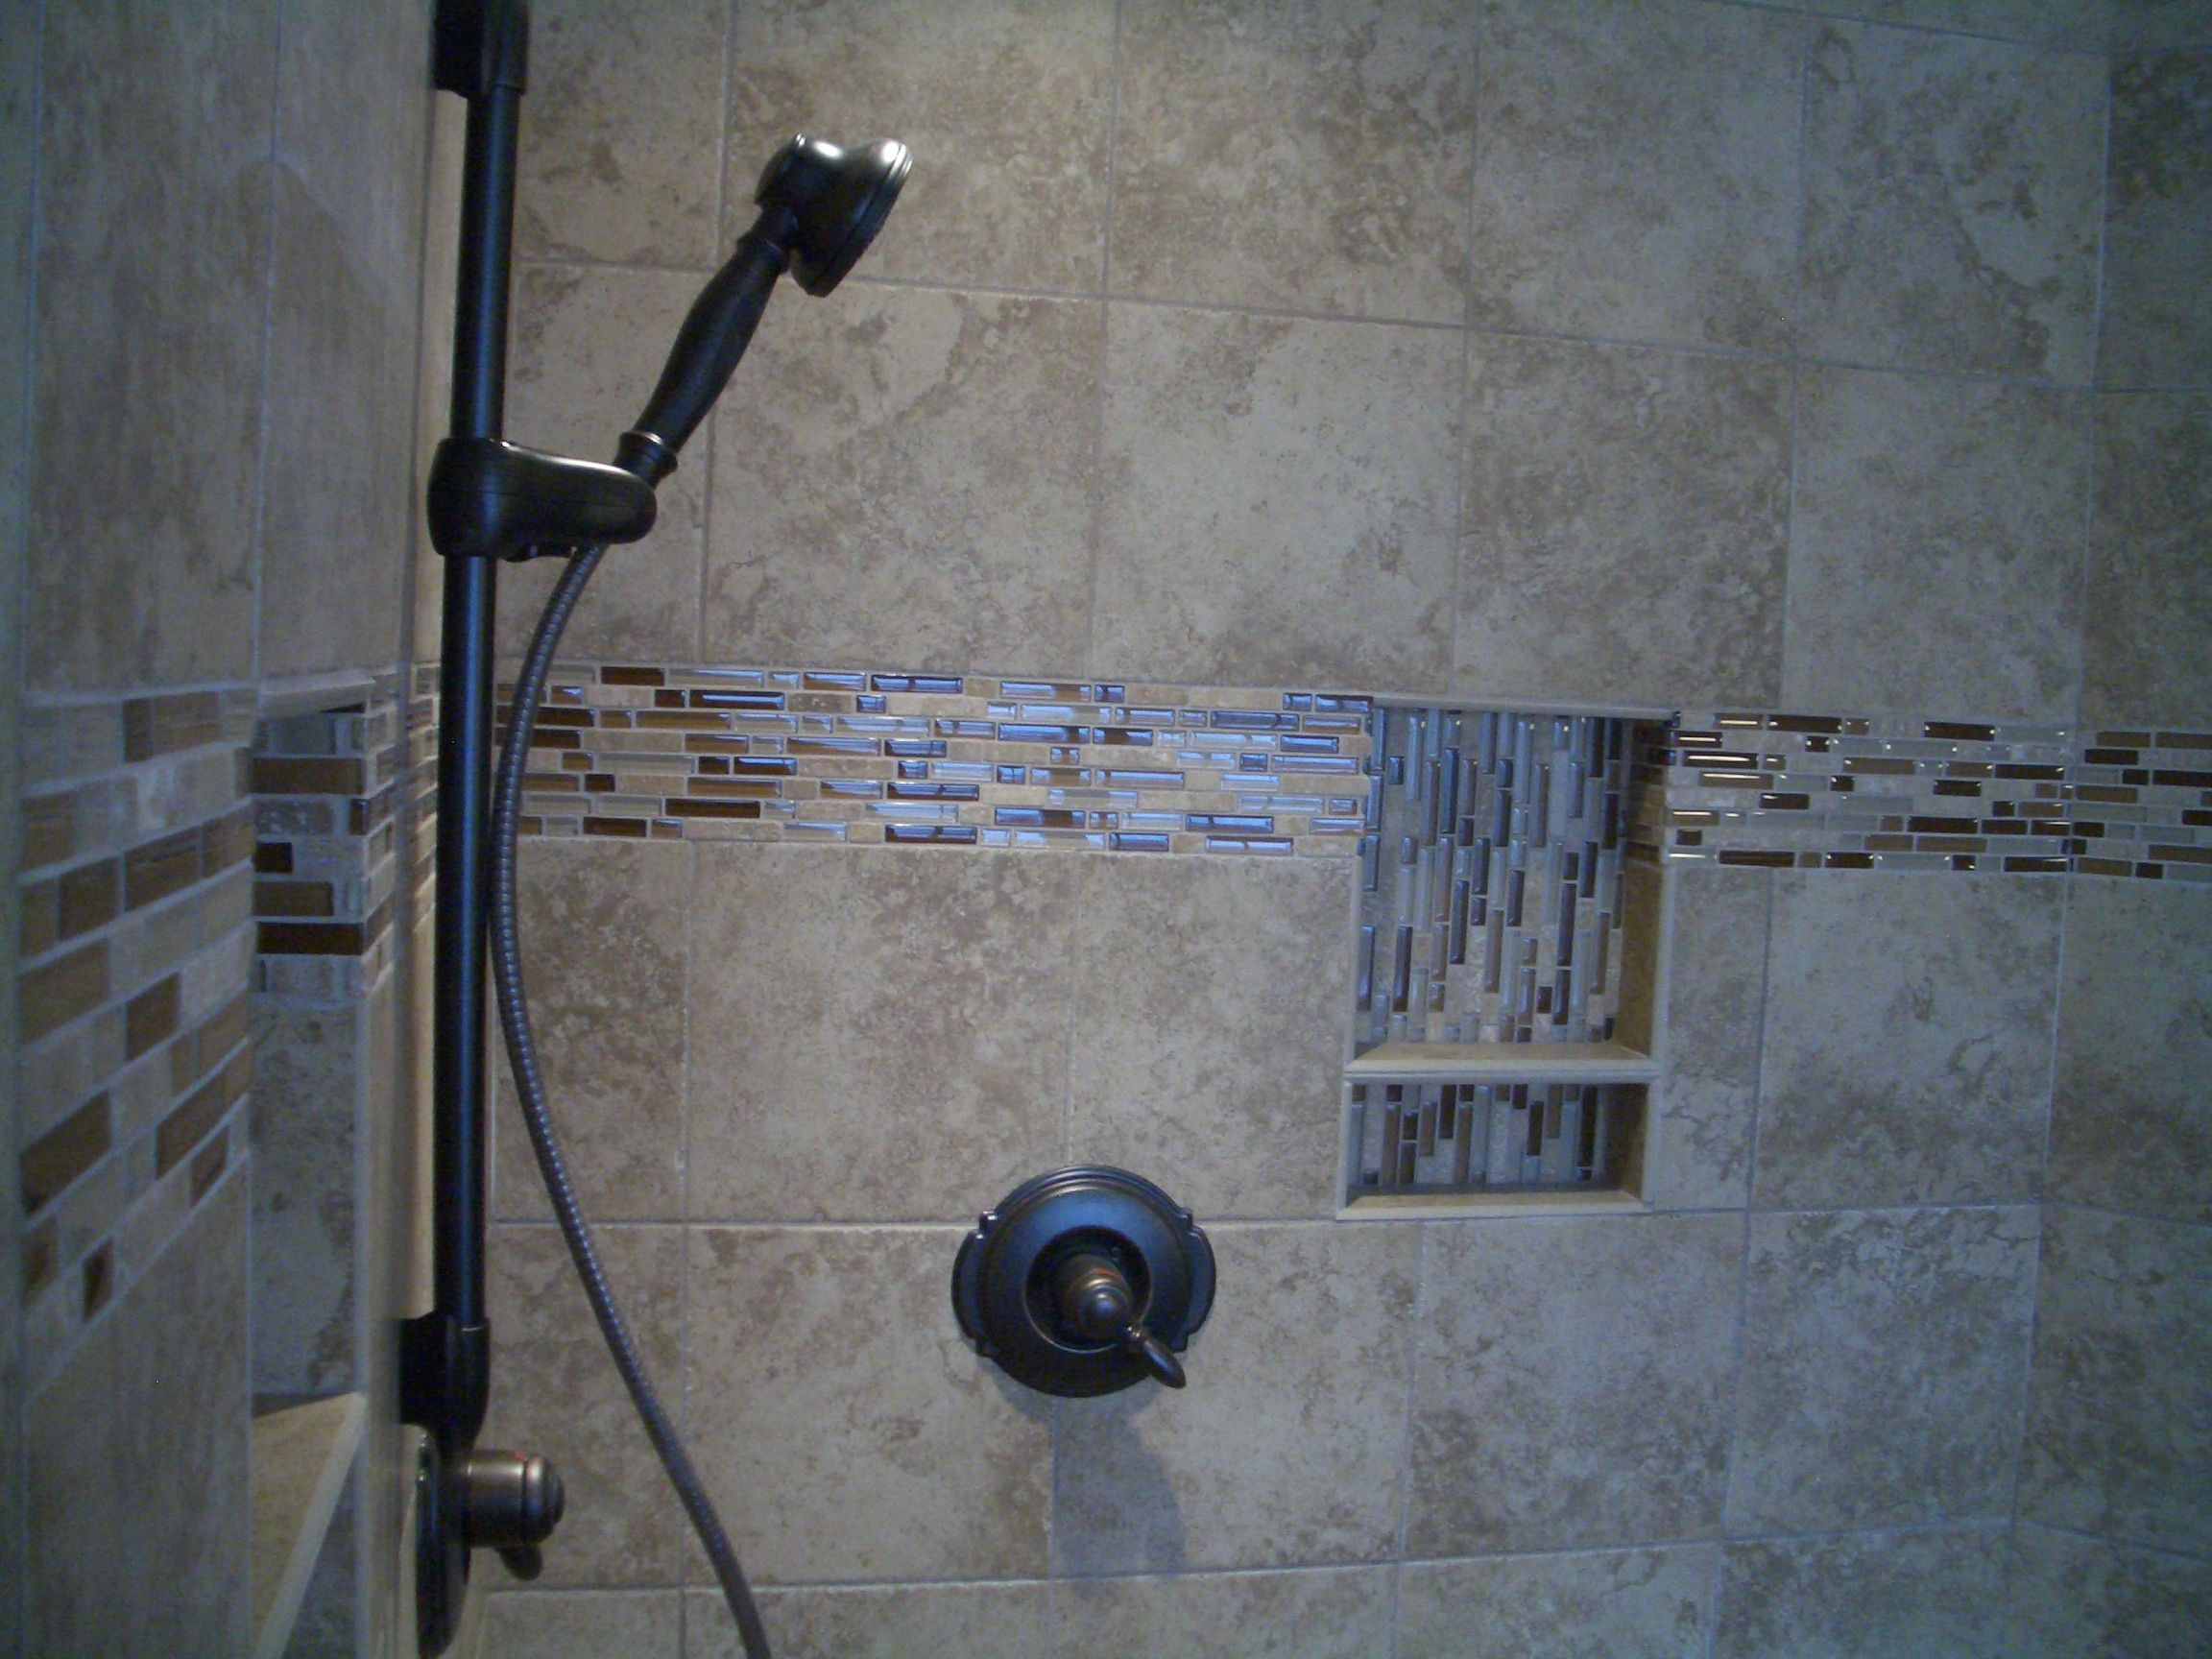 Pin By Julie Gilbride On Bathroom Tile Ideas Pinterest Mosaics Tile Ideas And Search Pin